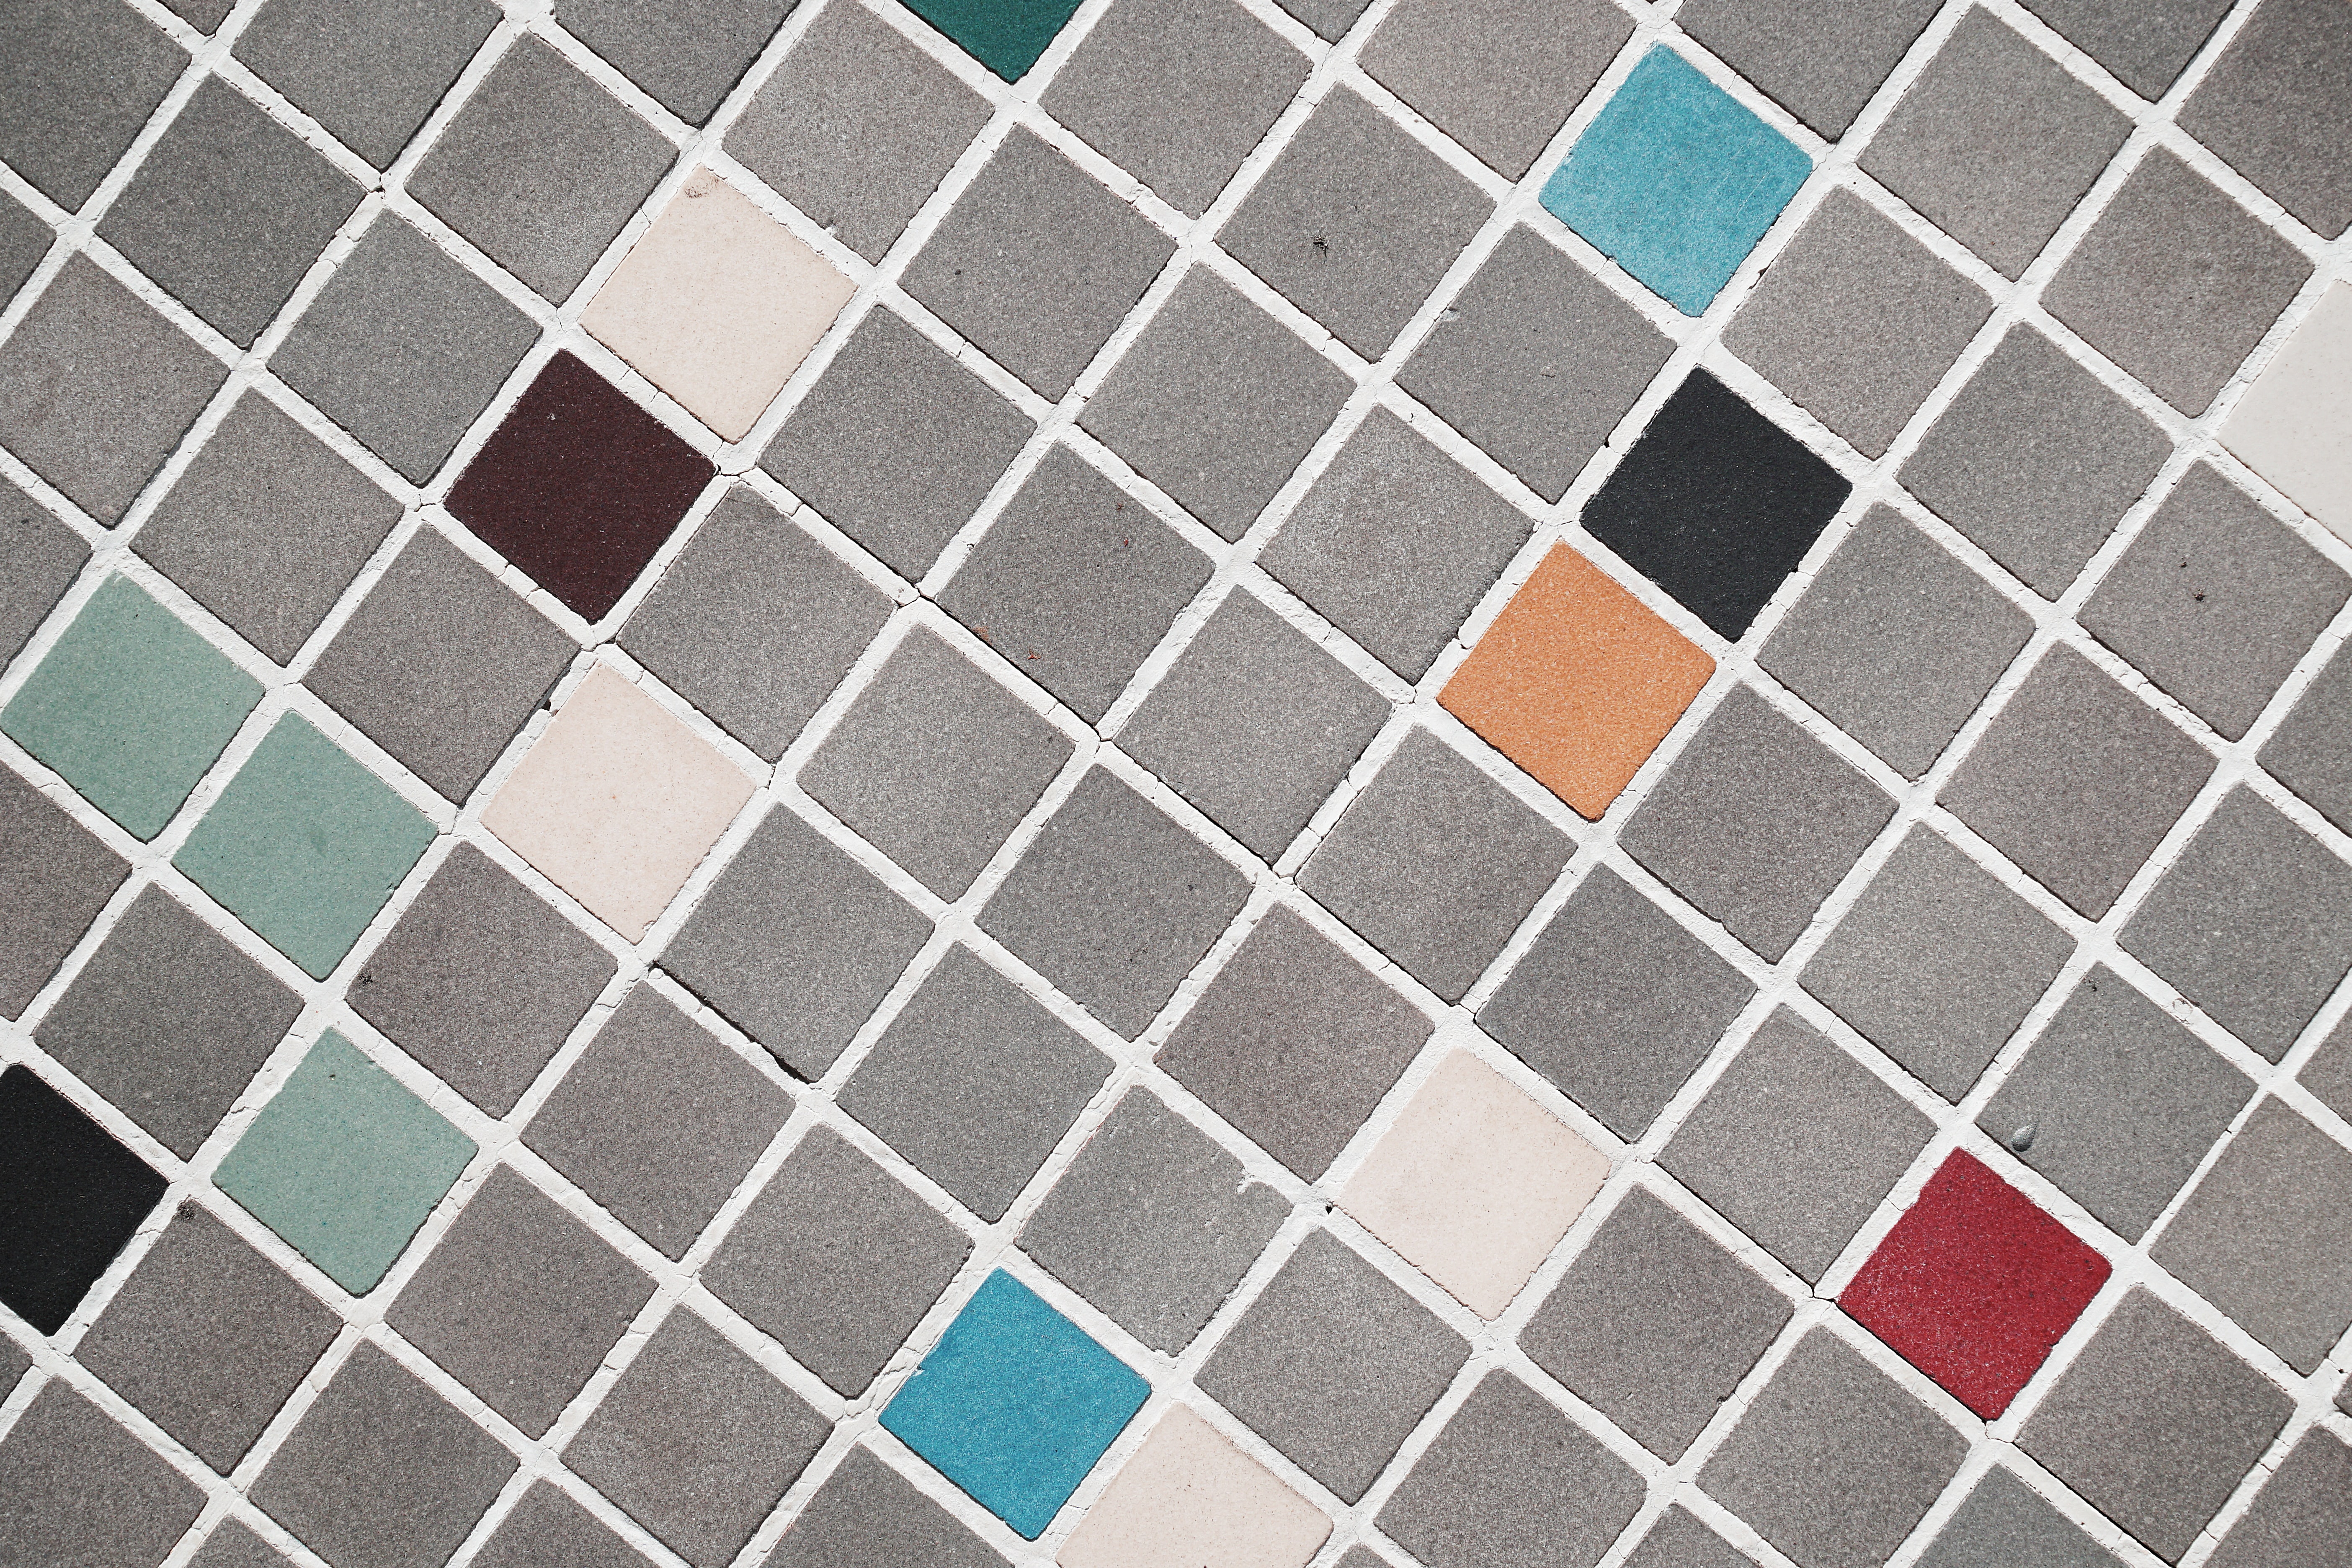 photo of gray, red, blue, and orange ceramic tiles